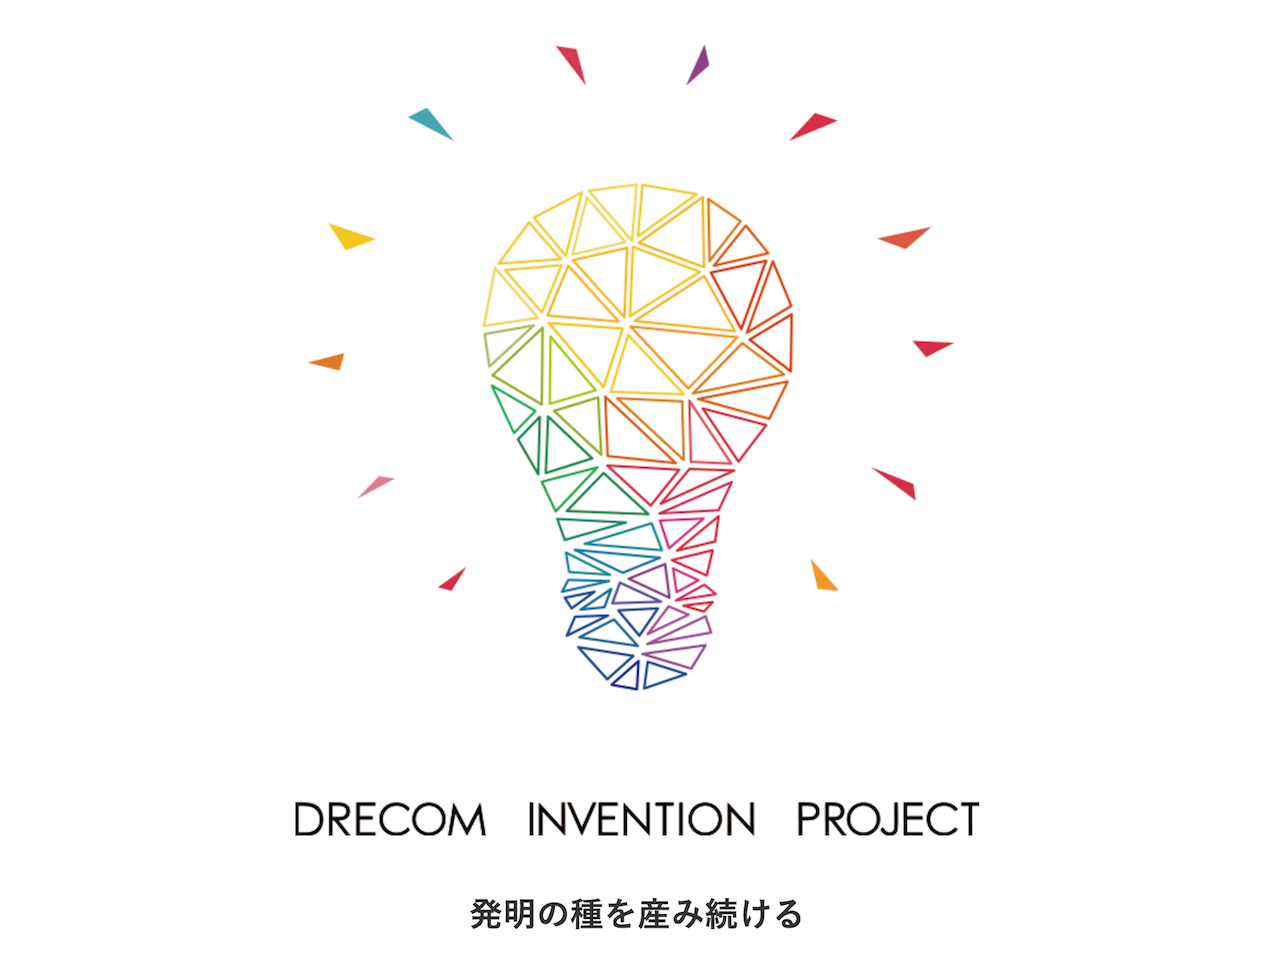 DRIP - Drecom Invention Project